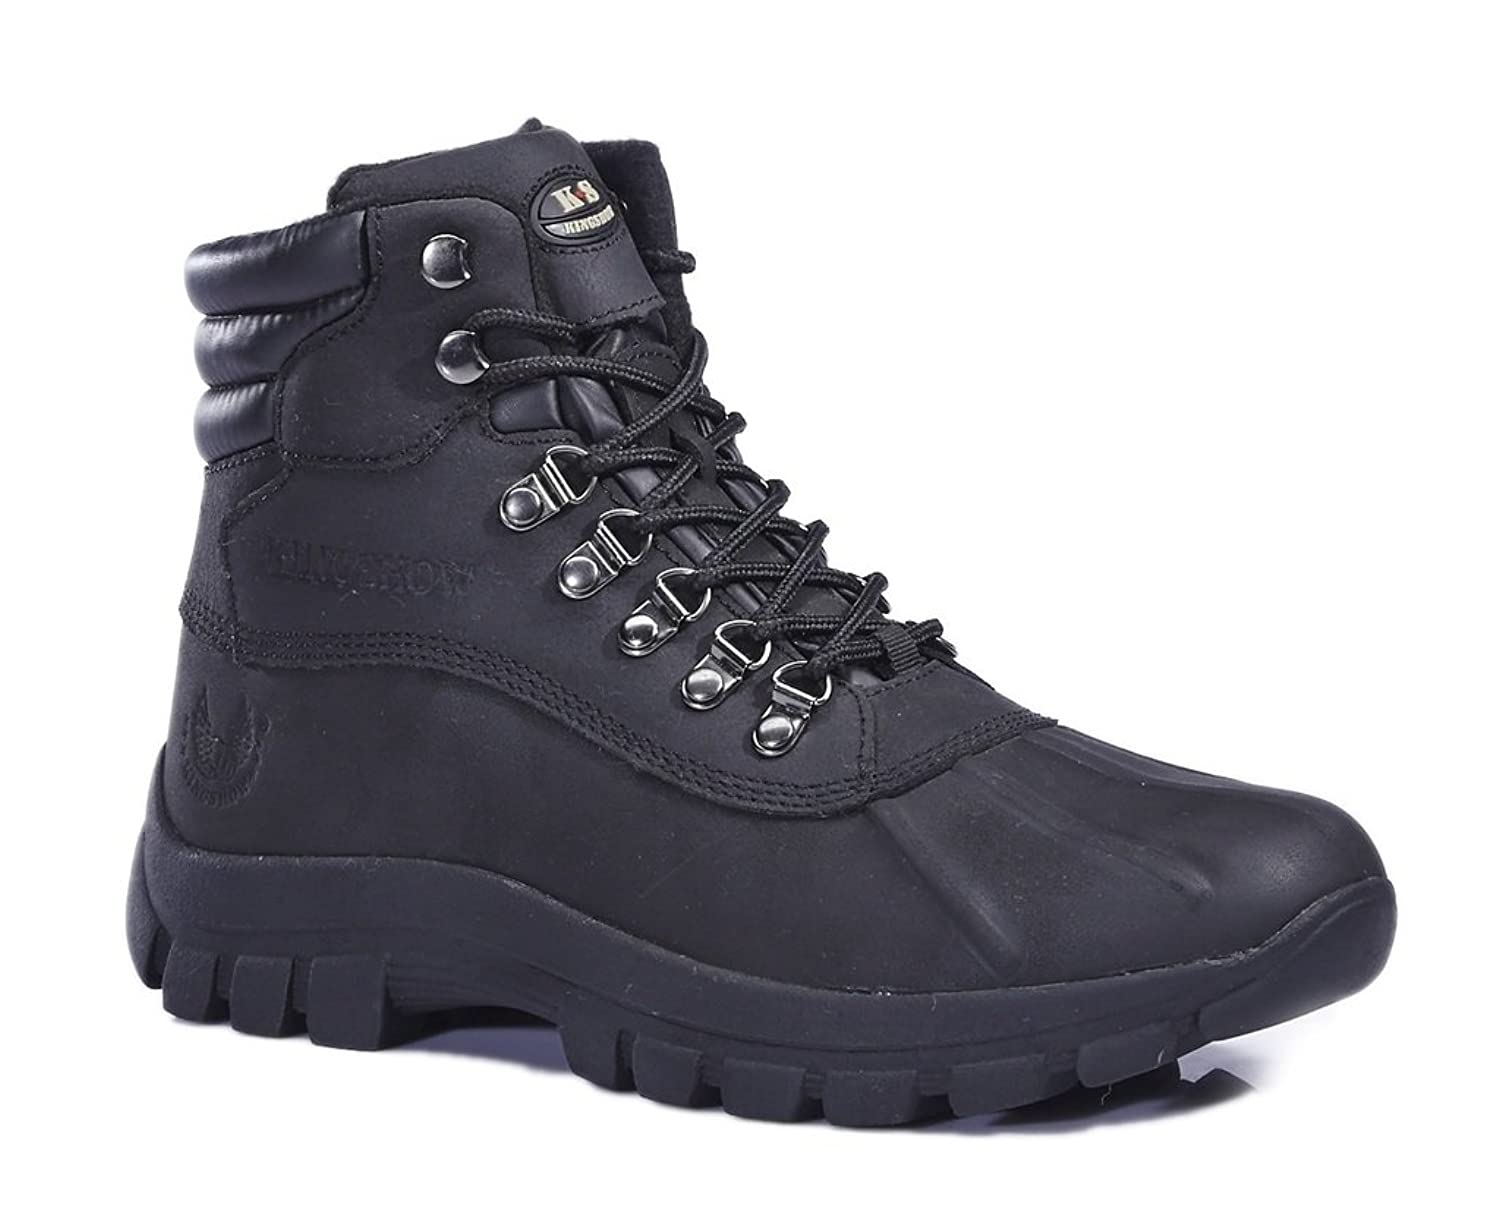 KINGSHOW Men's M0705 Water Proof Black Leather Rubber Sole Winter Snow Boots 10.5 M US